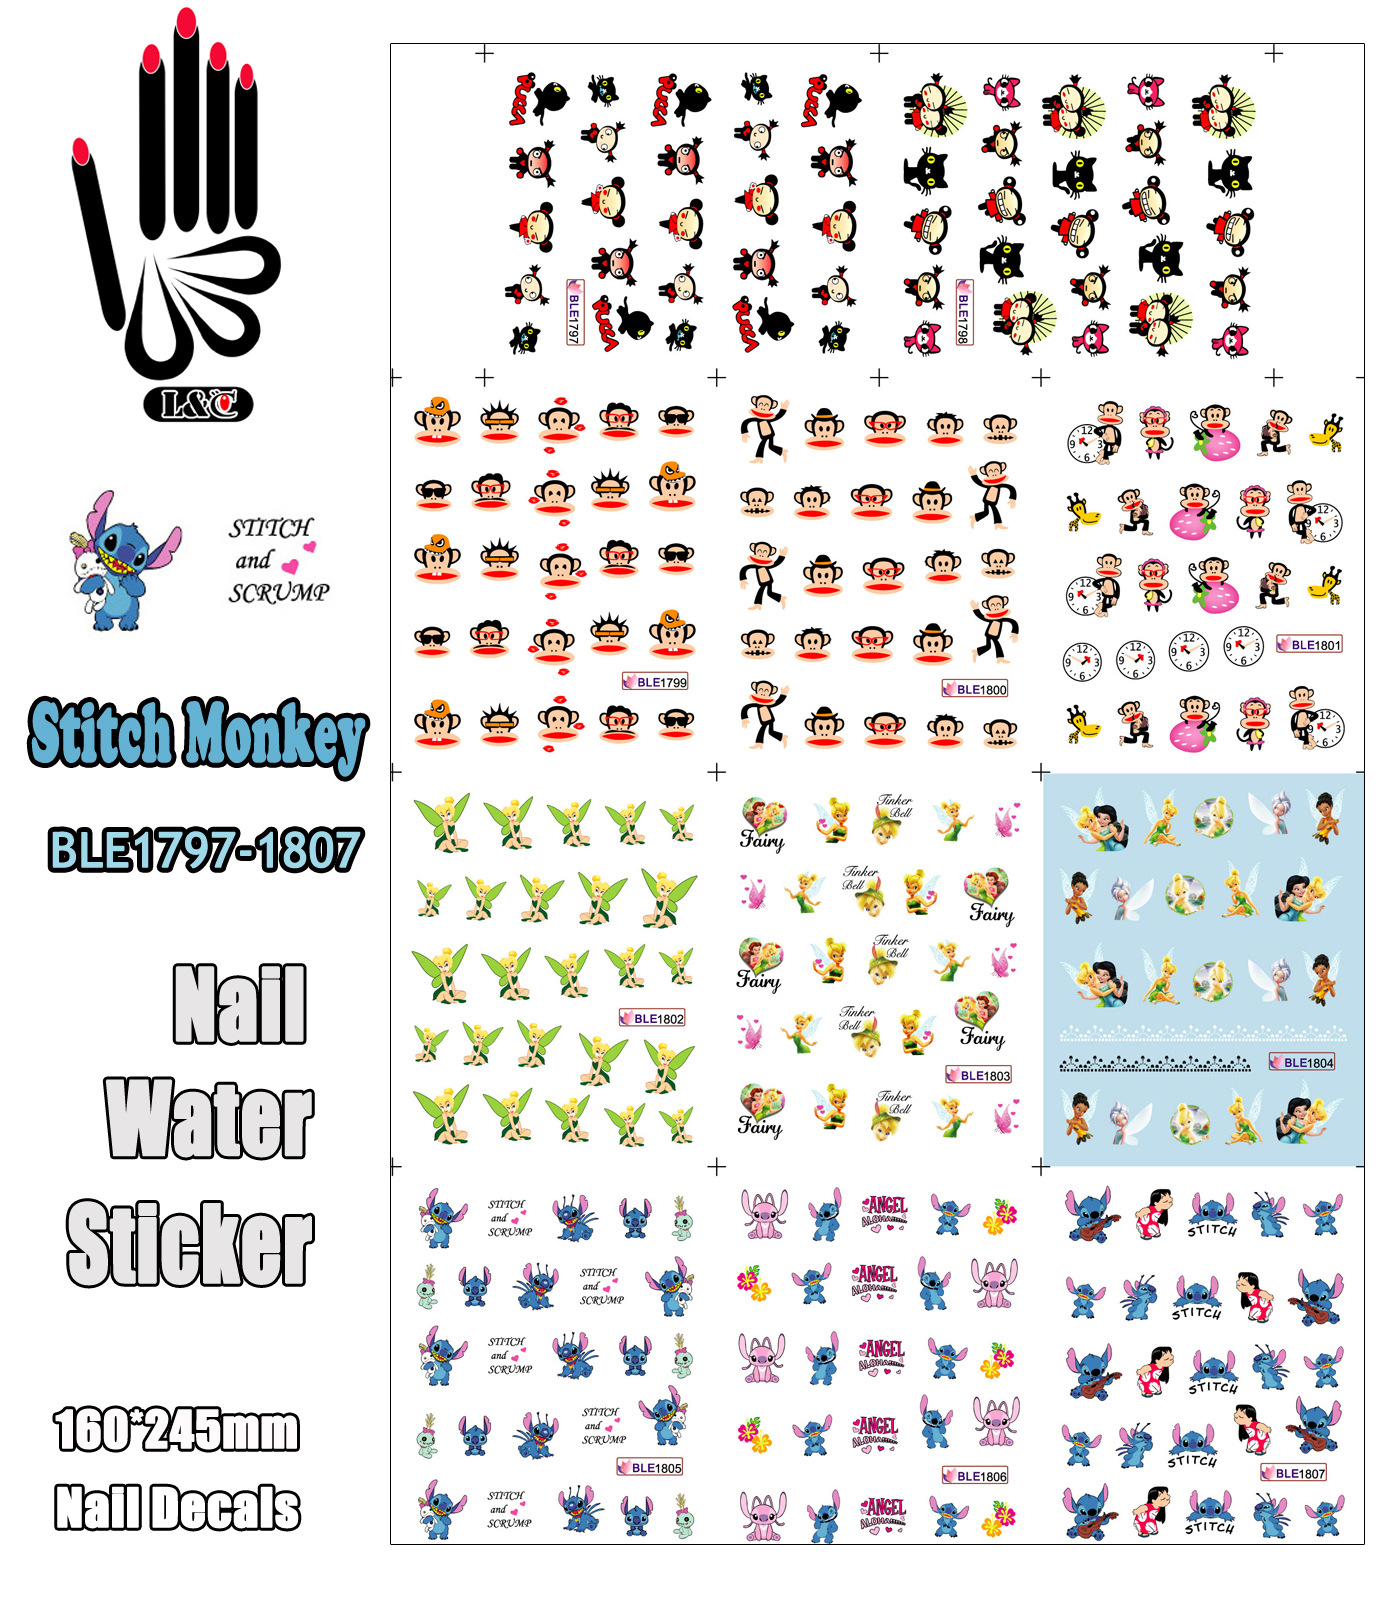 11 Sheets/Lot Art Nail BLE1797-1807 Cartoon Stitch Monkey Pucca Nail Art Water Transfer Sticker For Nail(11 DESIGNS IN 1) nail art large piece yb529 540 12 designs in 1 cartoon pet hello kitty nail art water transfer sticker decal for nail